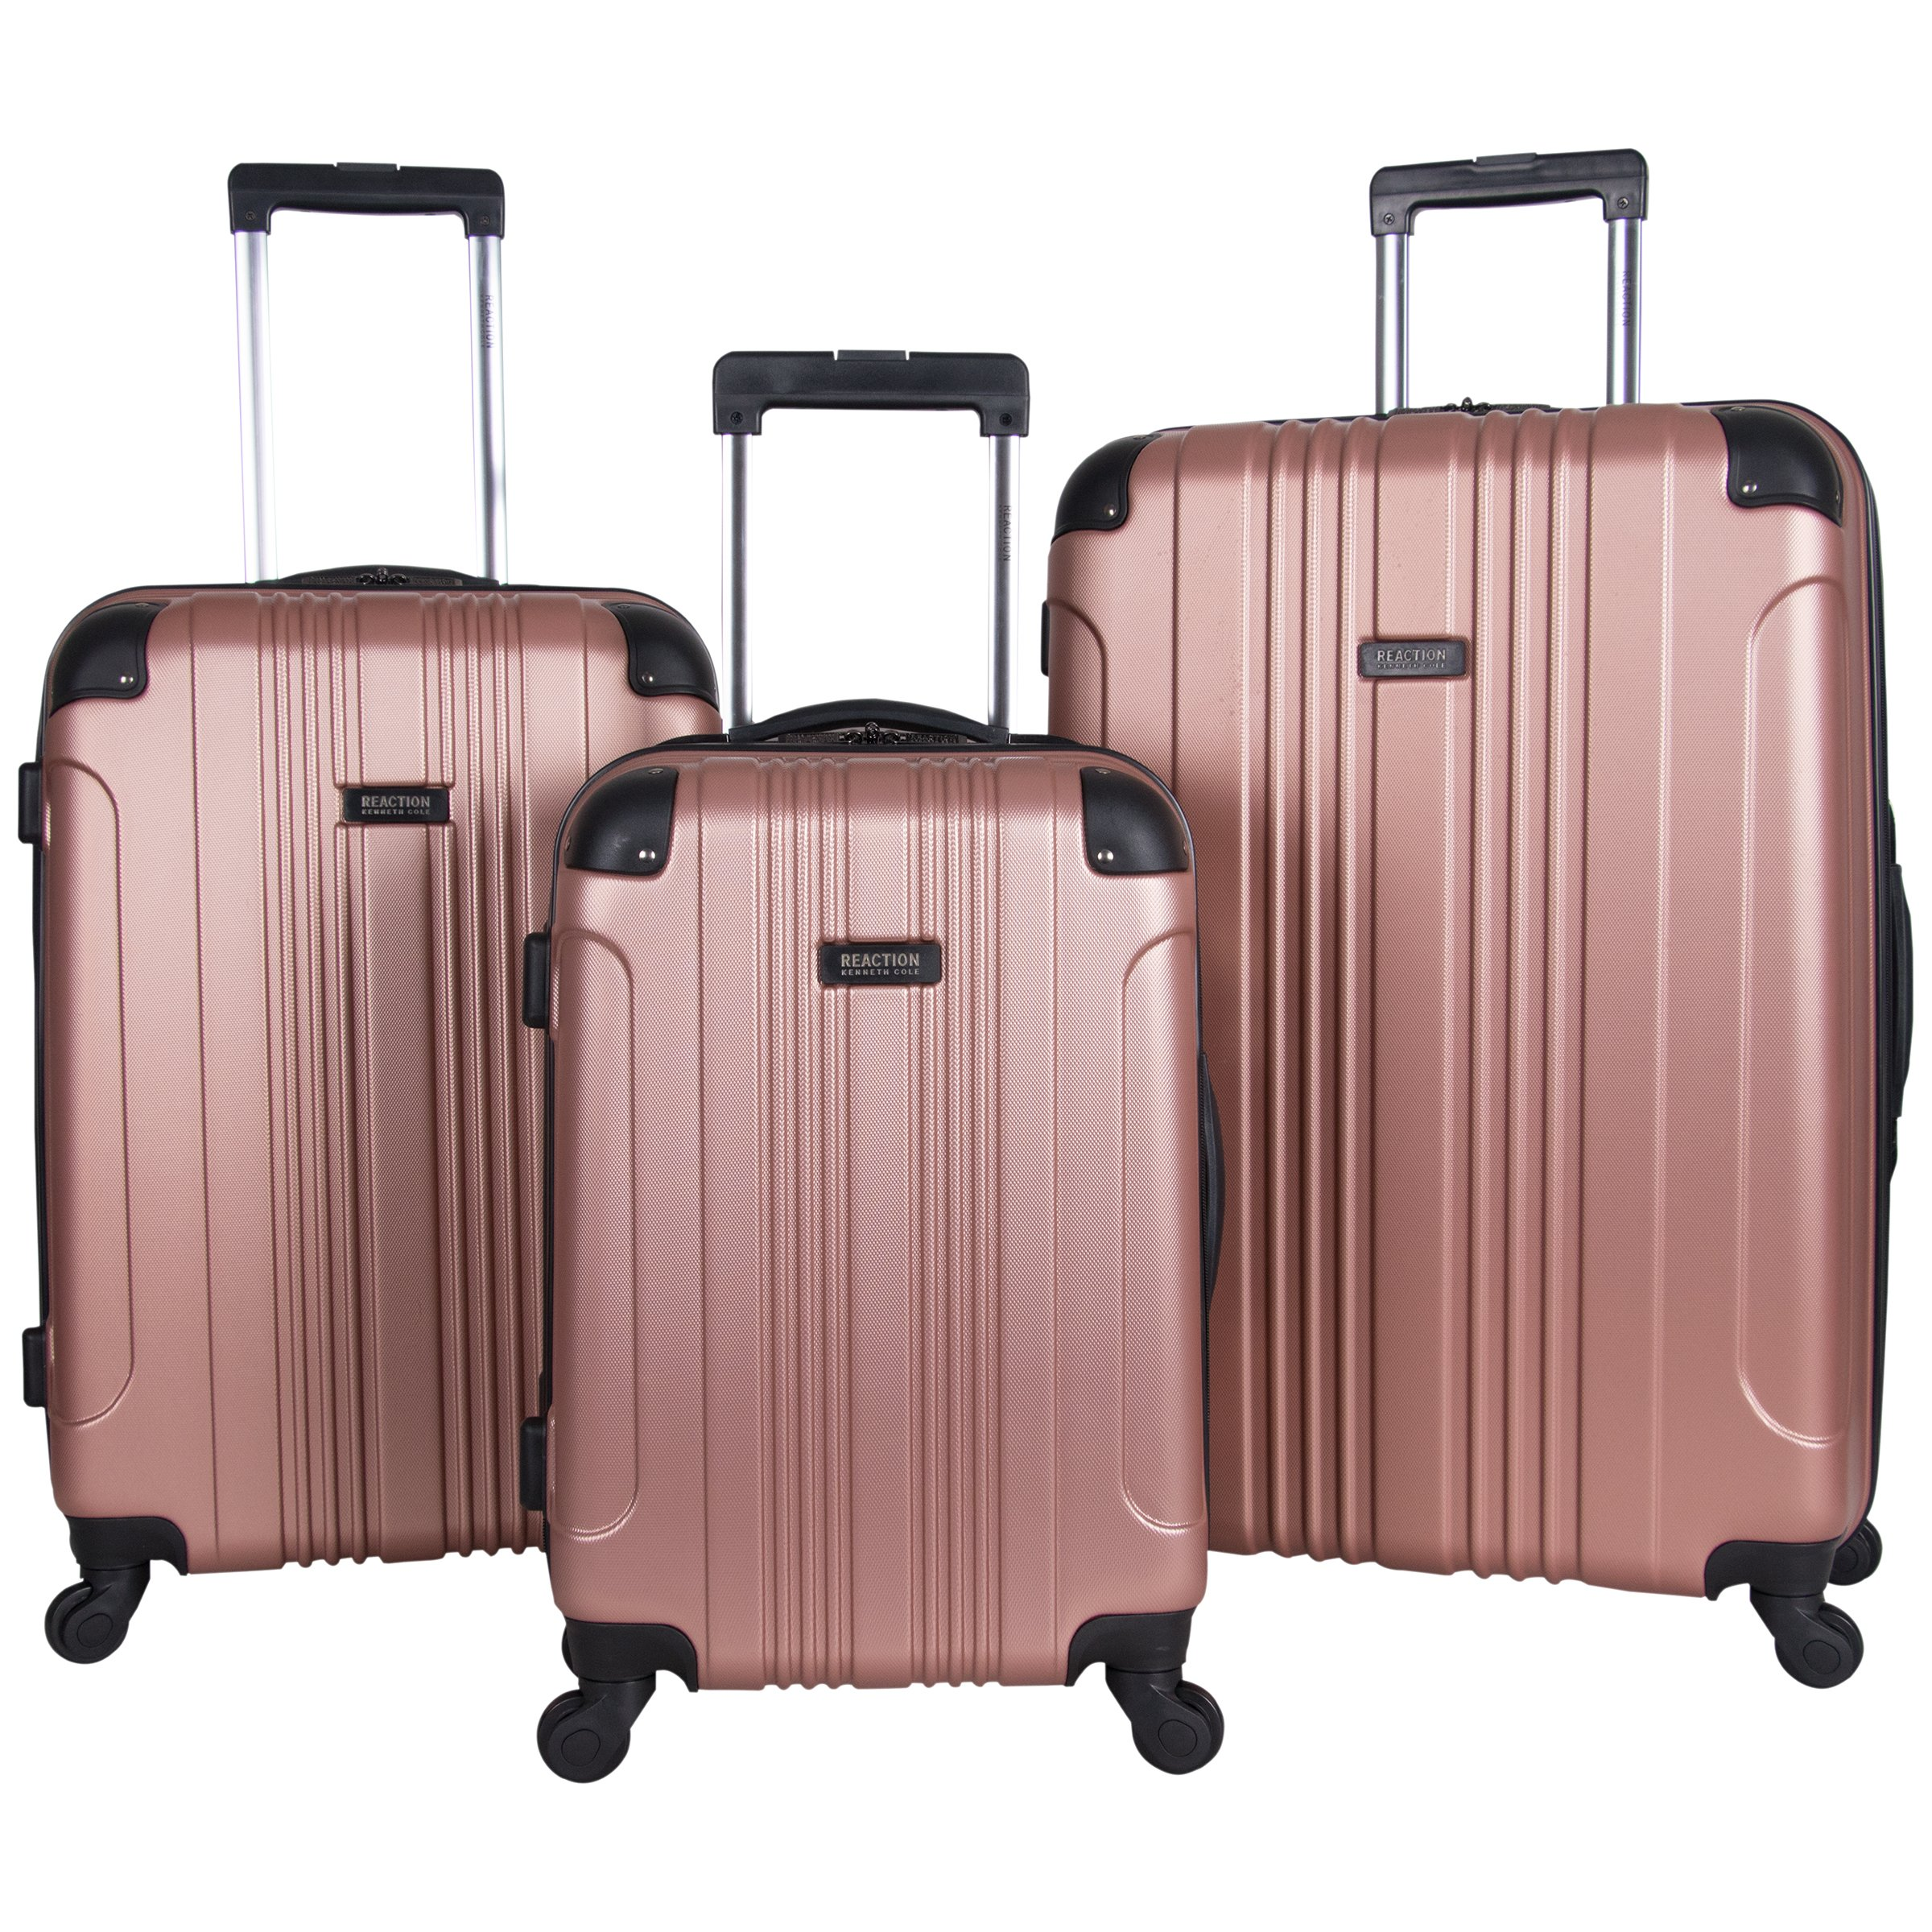 Kenneth Cole Reaction Out Of Bounds 3-Piece Lightweight Hardside 4-Wheel Spinner Luggage Set: 20'' Carry-On, 24'', & 28'' by Kenneth Cole REACTION